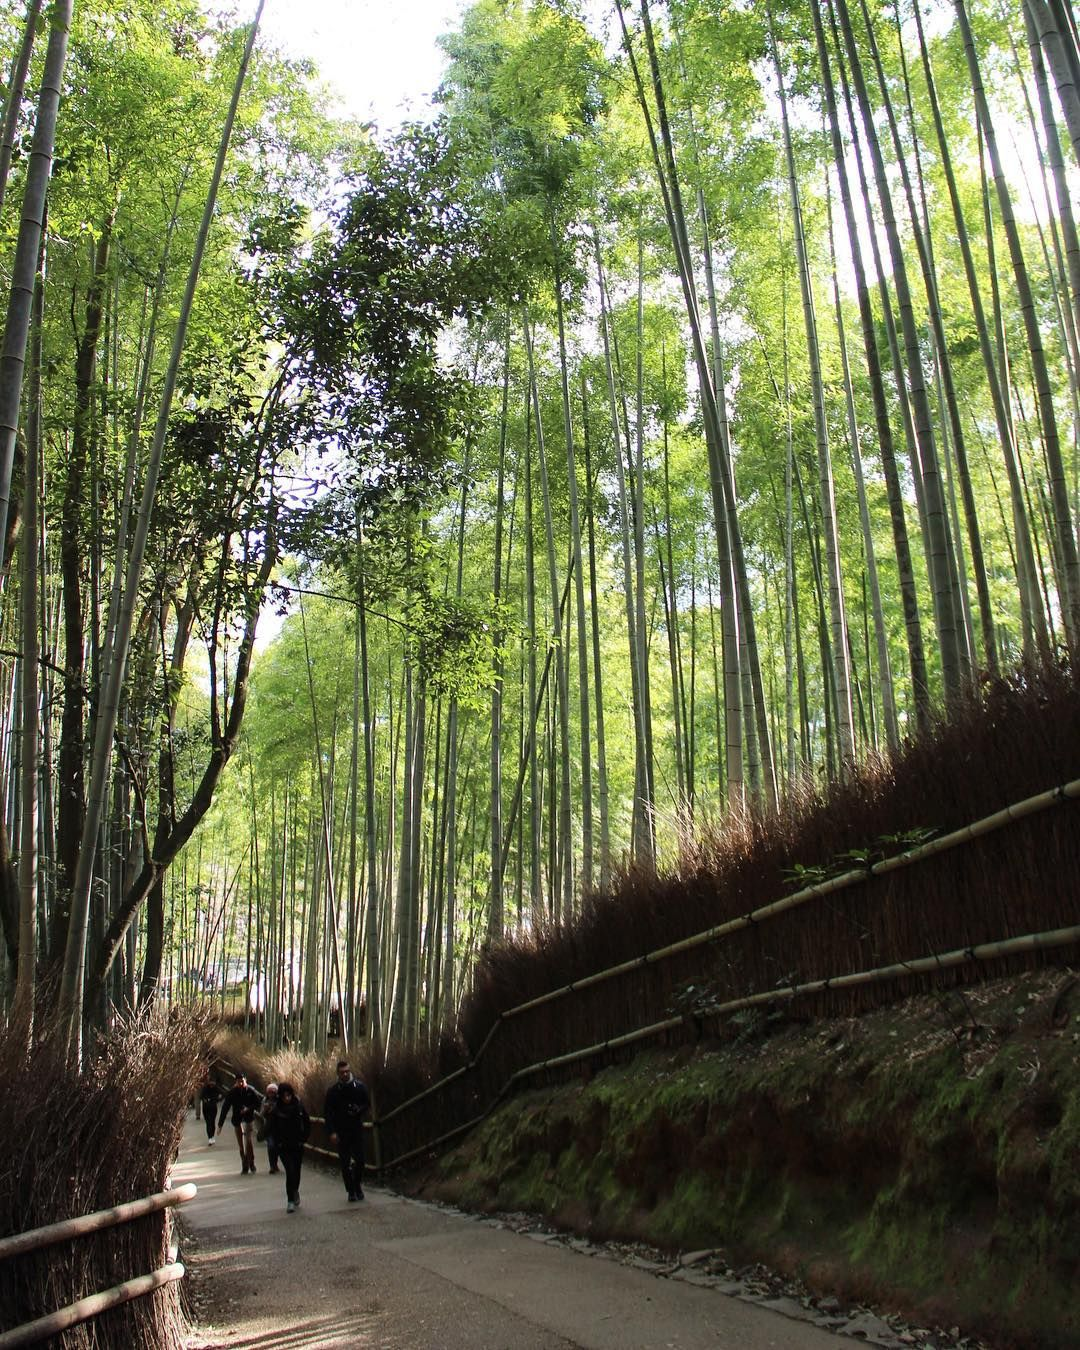 [New] The 10 Best Travel (with Pictures) -  Early morning visits are the best way to beat the crowds at this Bamboo Forest  . . . #kyoto #arashiyama #bambooforest #arashiyamabambooforest #japan #visitjapan #discovertokyo #japanawaits #discoverjapan #visitjpn #travel #traveldiaries #travelgram #travelphoto #travelphotography #travelpics #travel_captures #instagood #instadaily #instafollow #instagramhub #instatravel #photowalk #wanderlust #green #igerskyoto #kyototravel #kyototrip